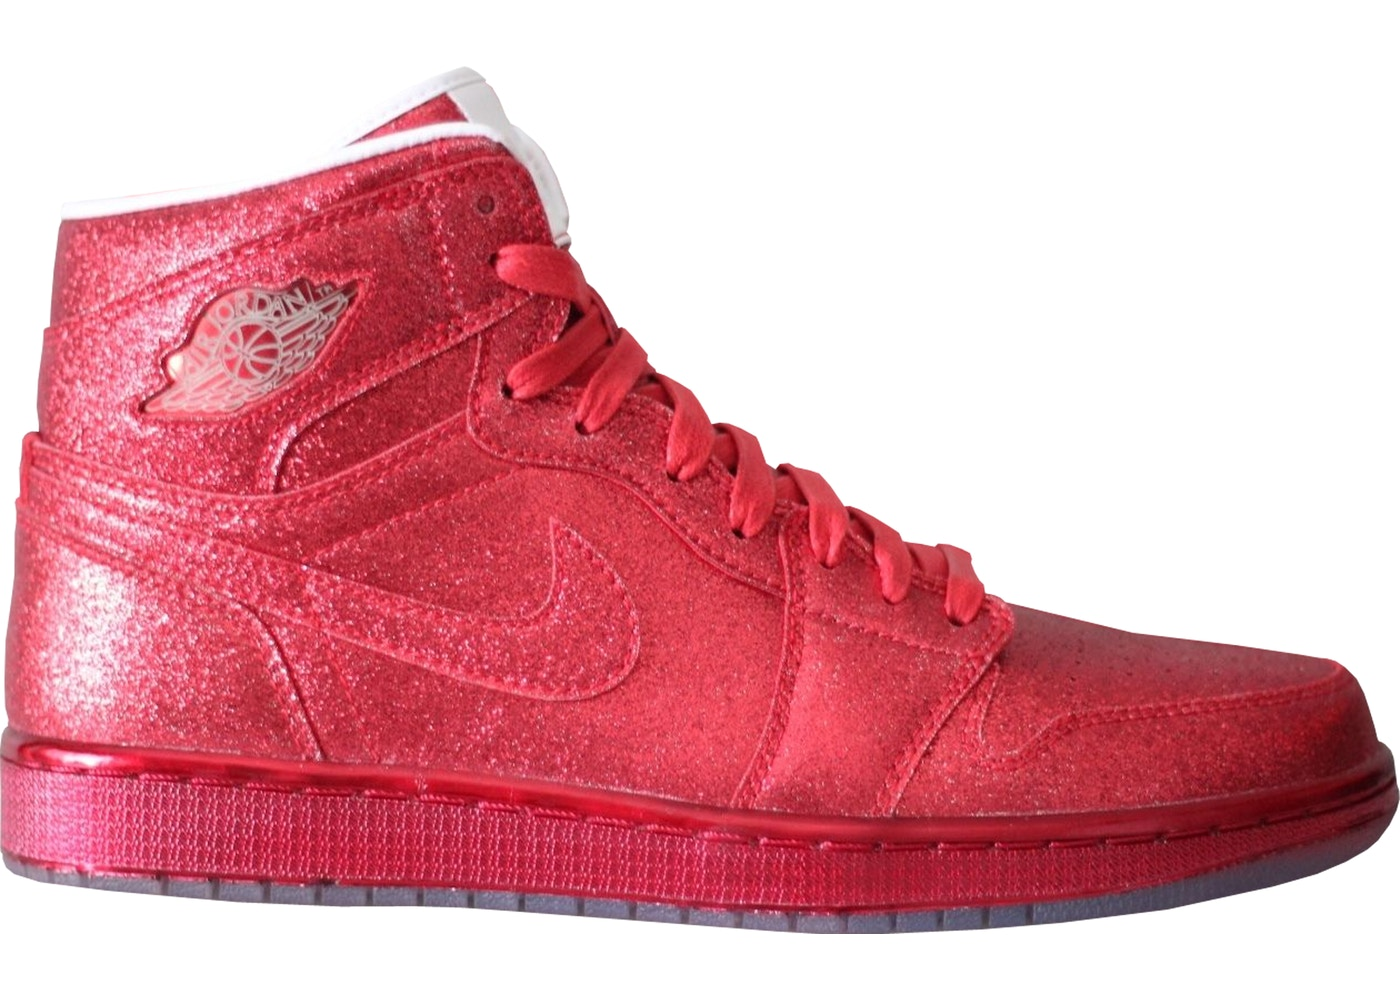 Air Jordan 1 Shoes - Average Sale Price e7da236b5cfc